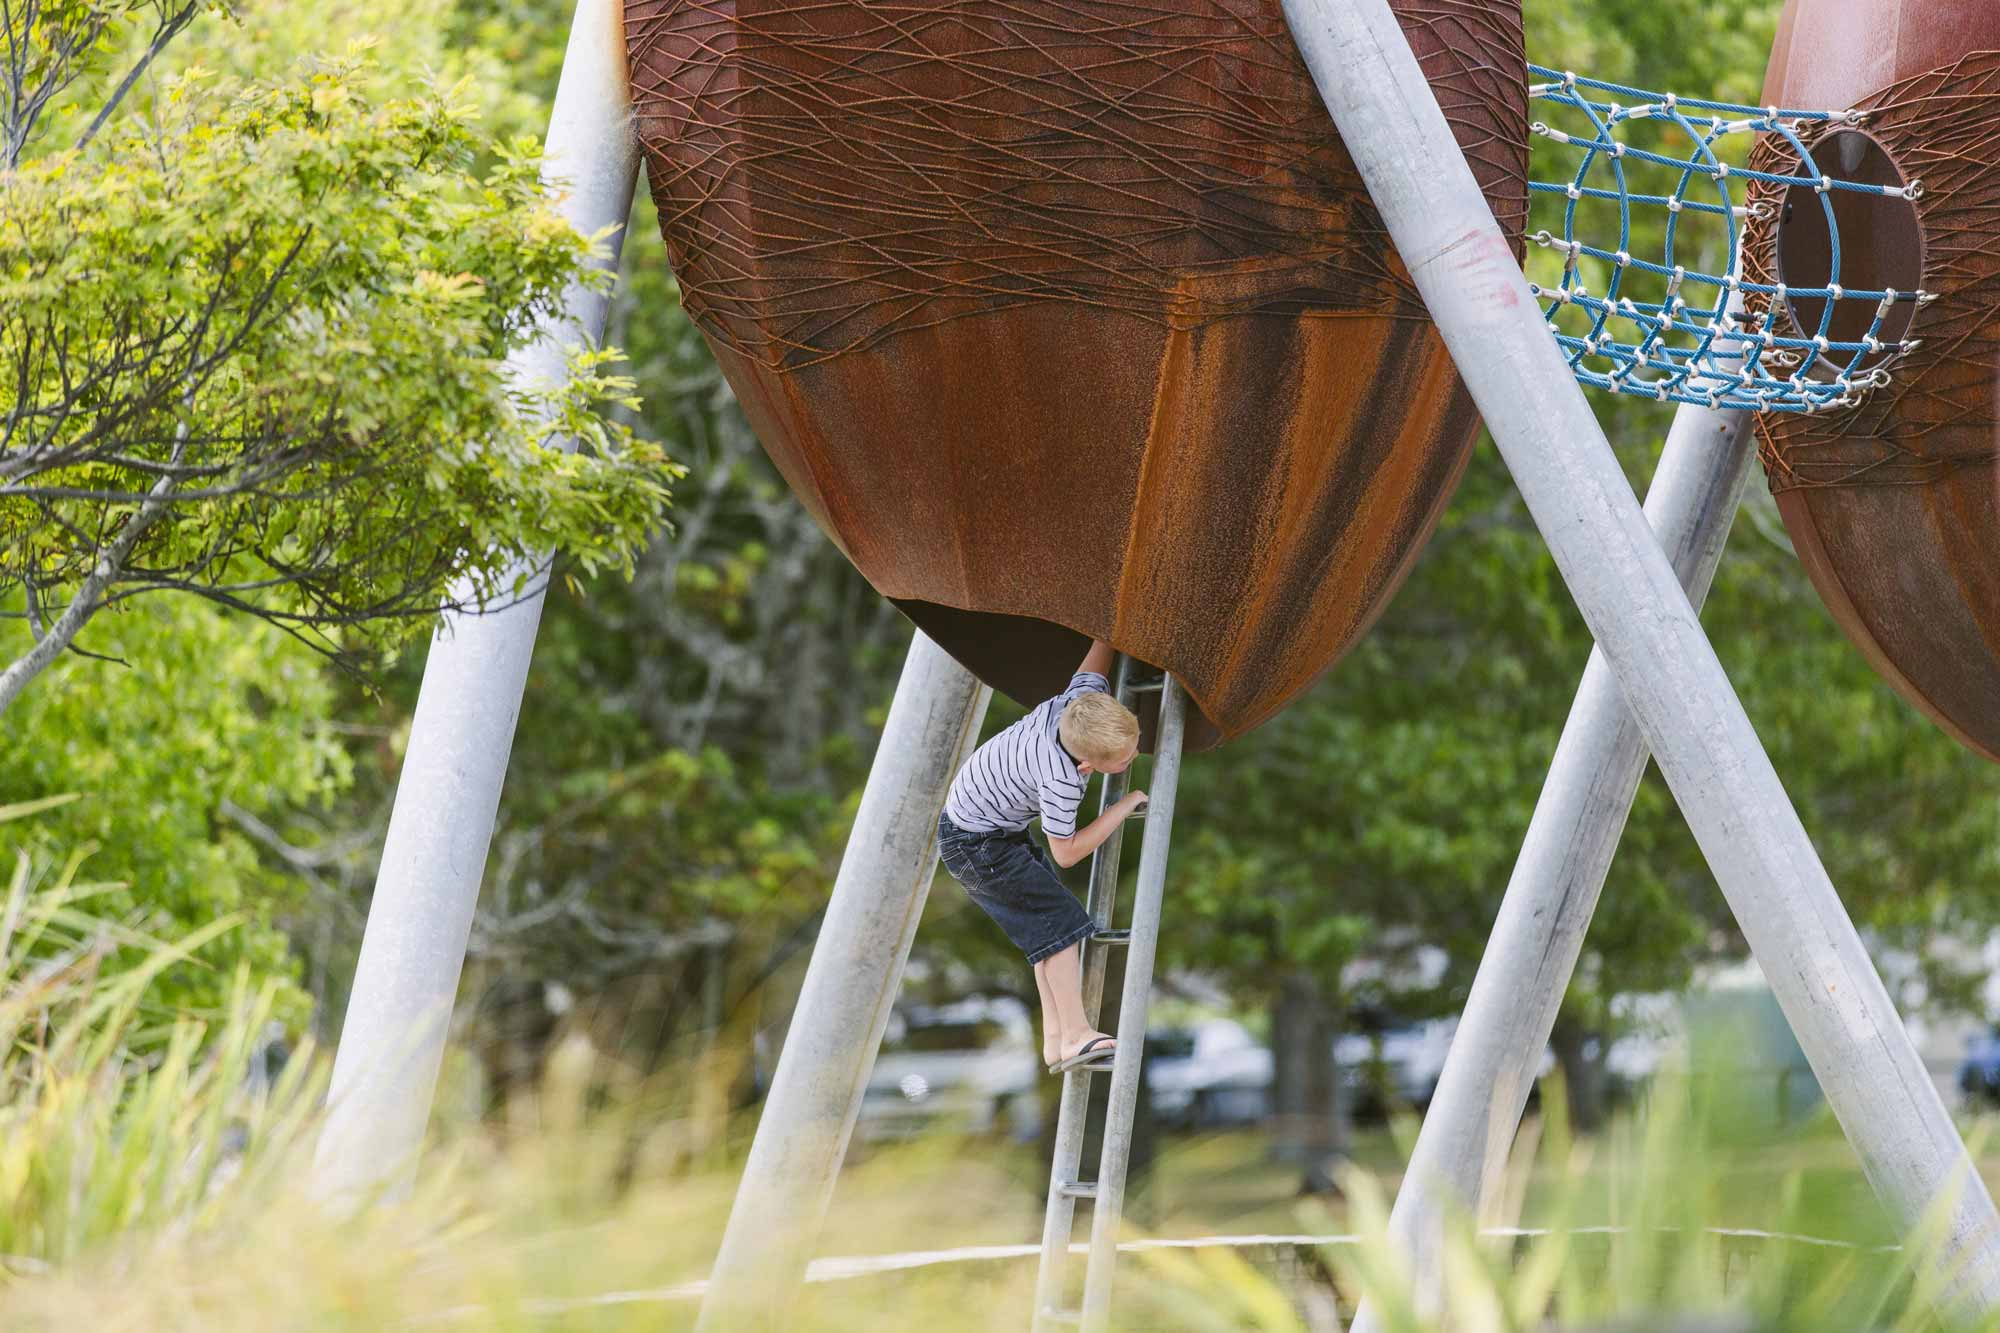 Hobsonville Point Playground